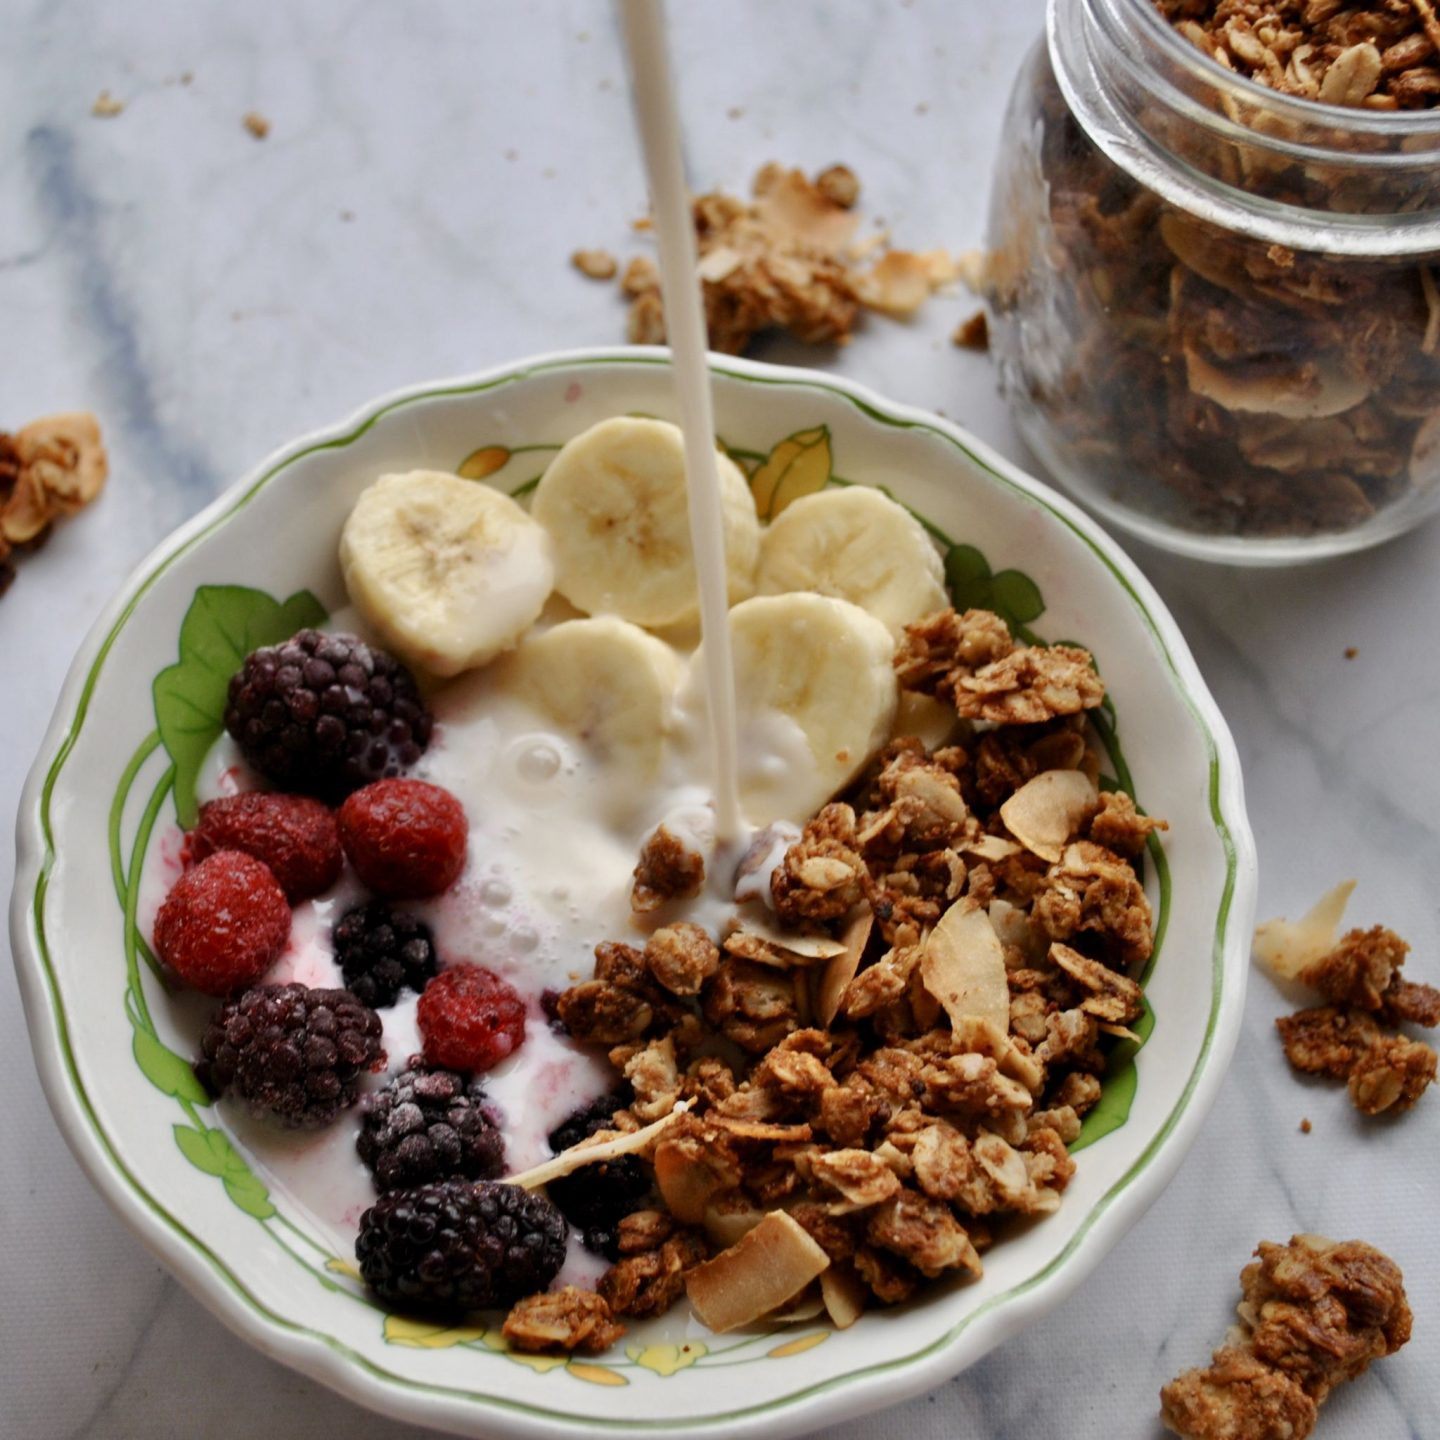 Salted Almond Butter & Coconut Granola